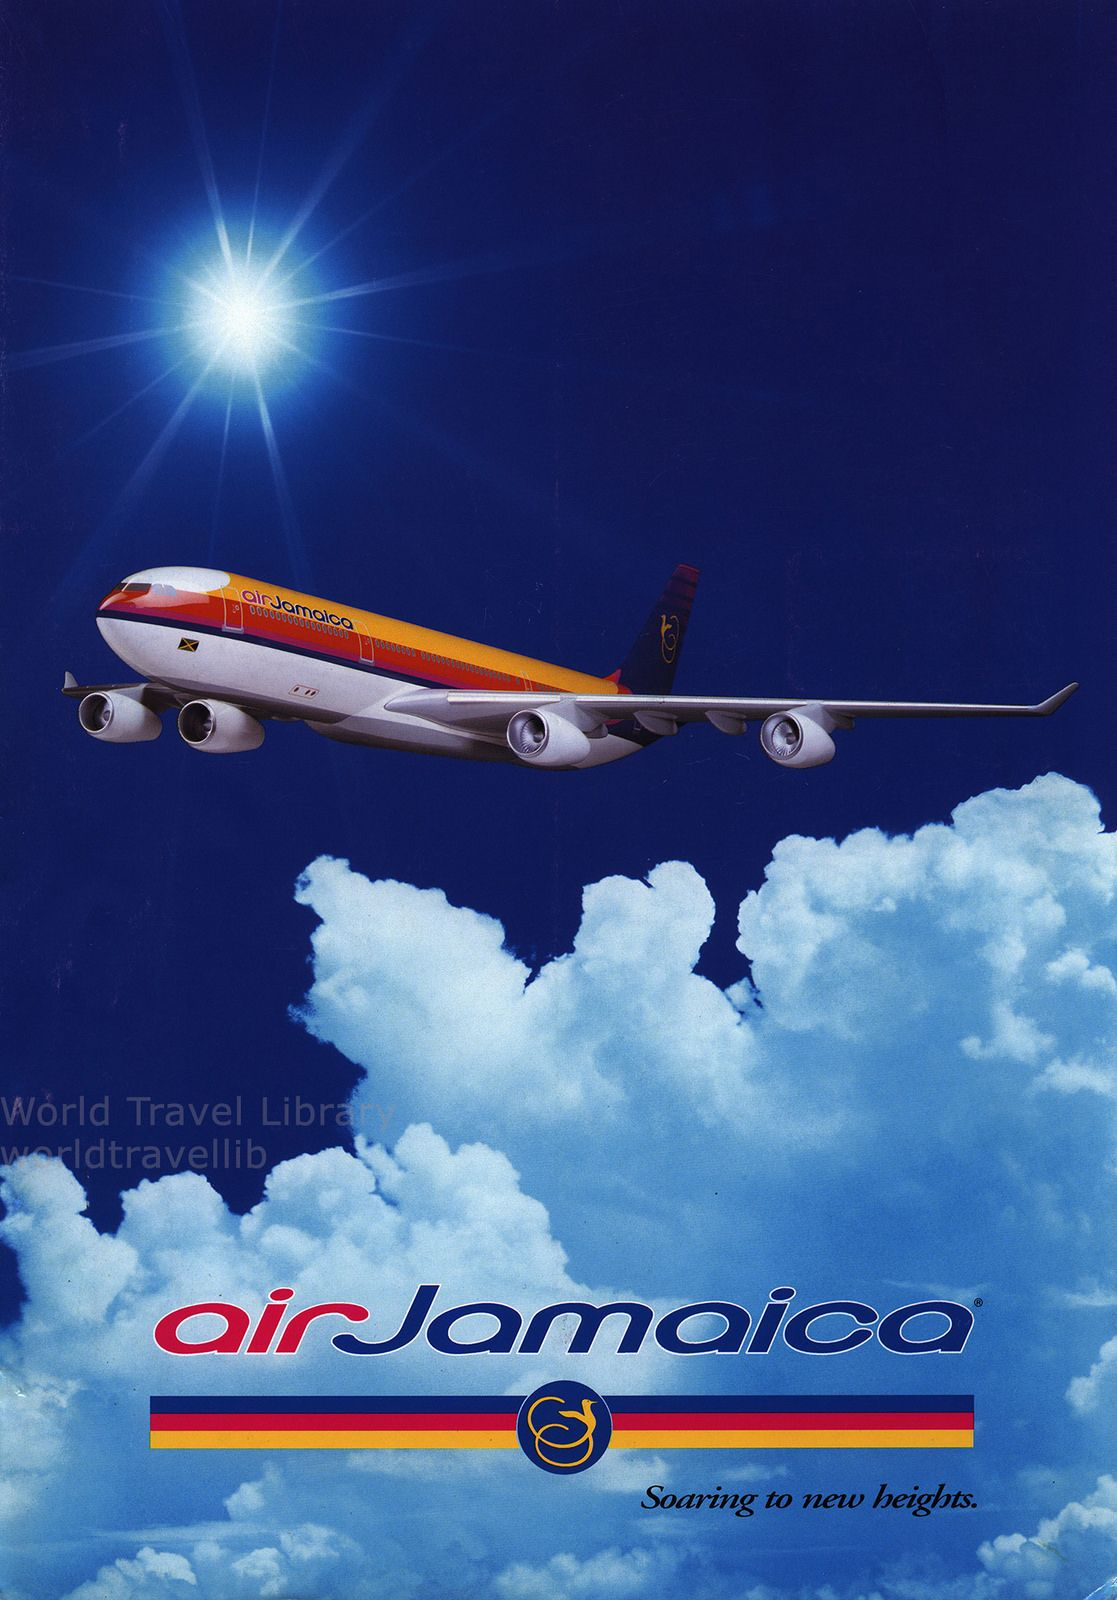 Air Jamaica Arrive in style on board our new A340300